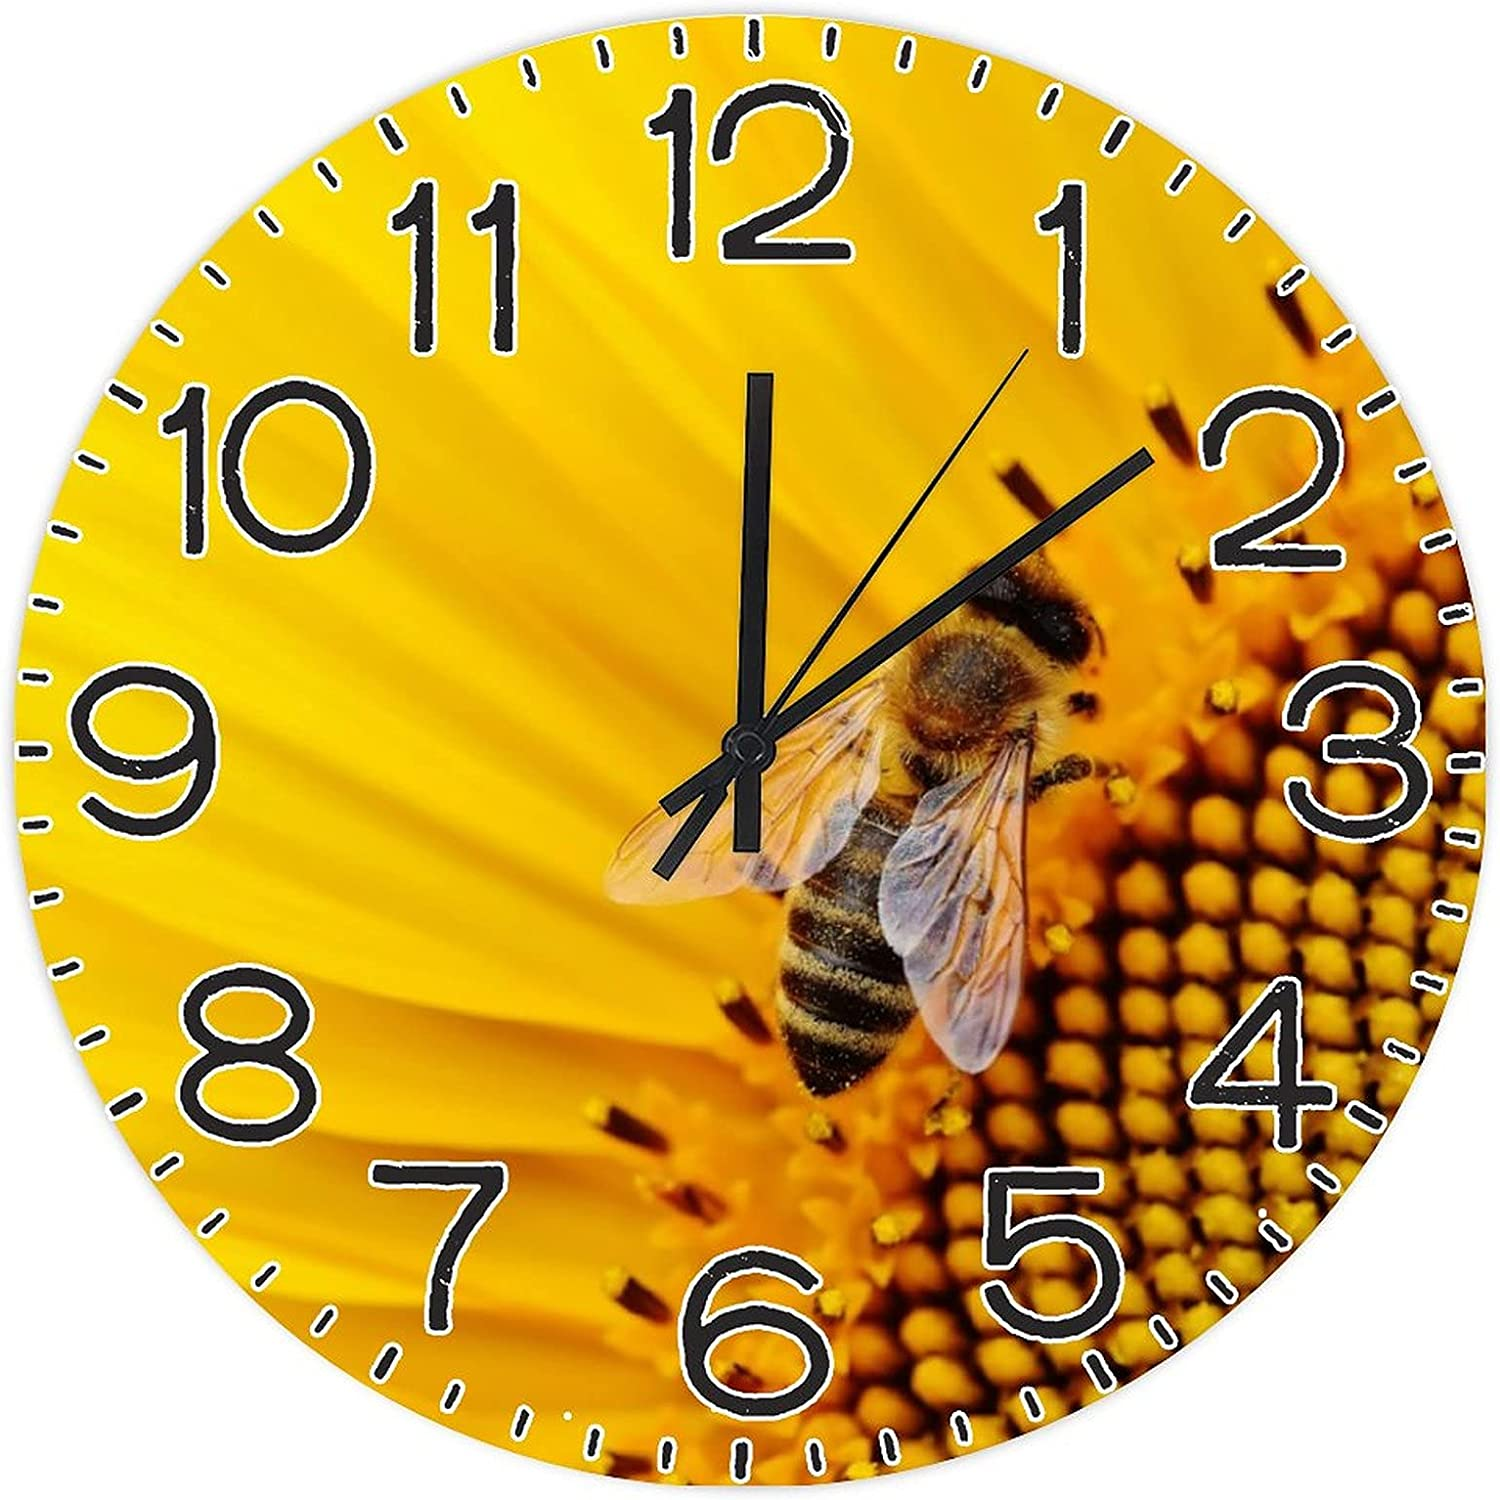 Sunflower Bees Round Limited price sale Wall 4 years warranty Clock Hom PVC Non-Ticking Silent